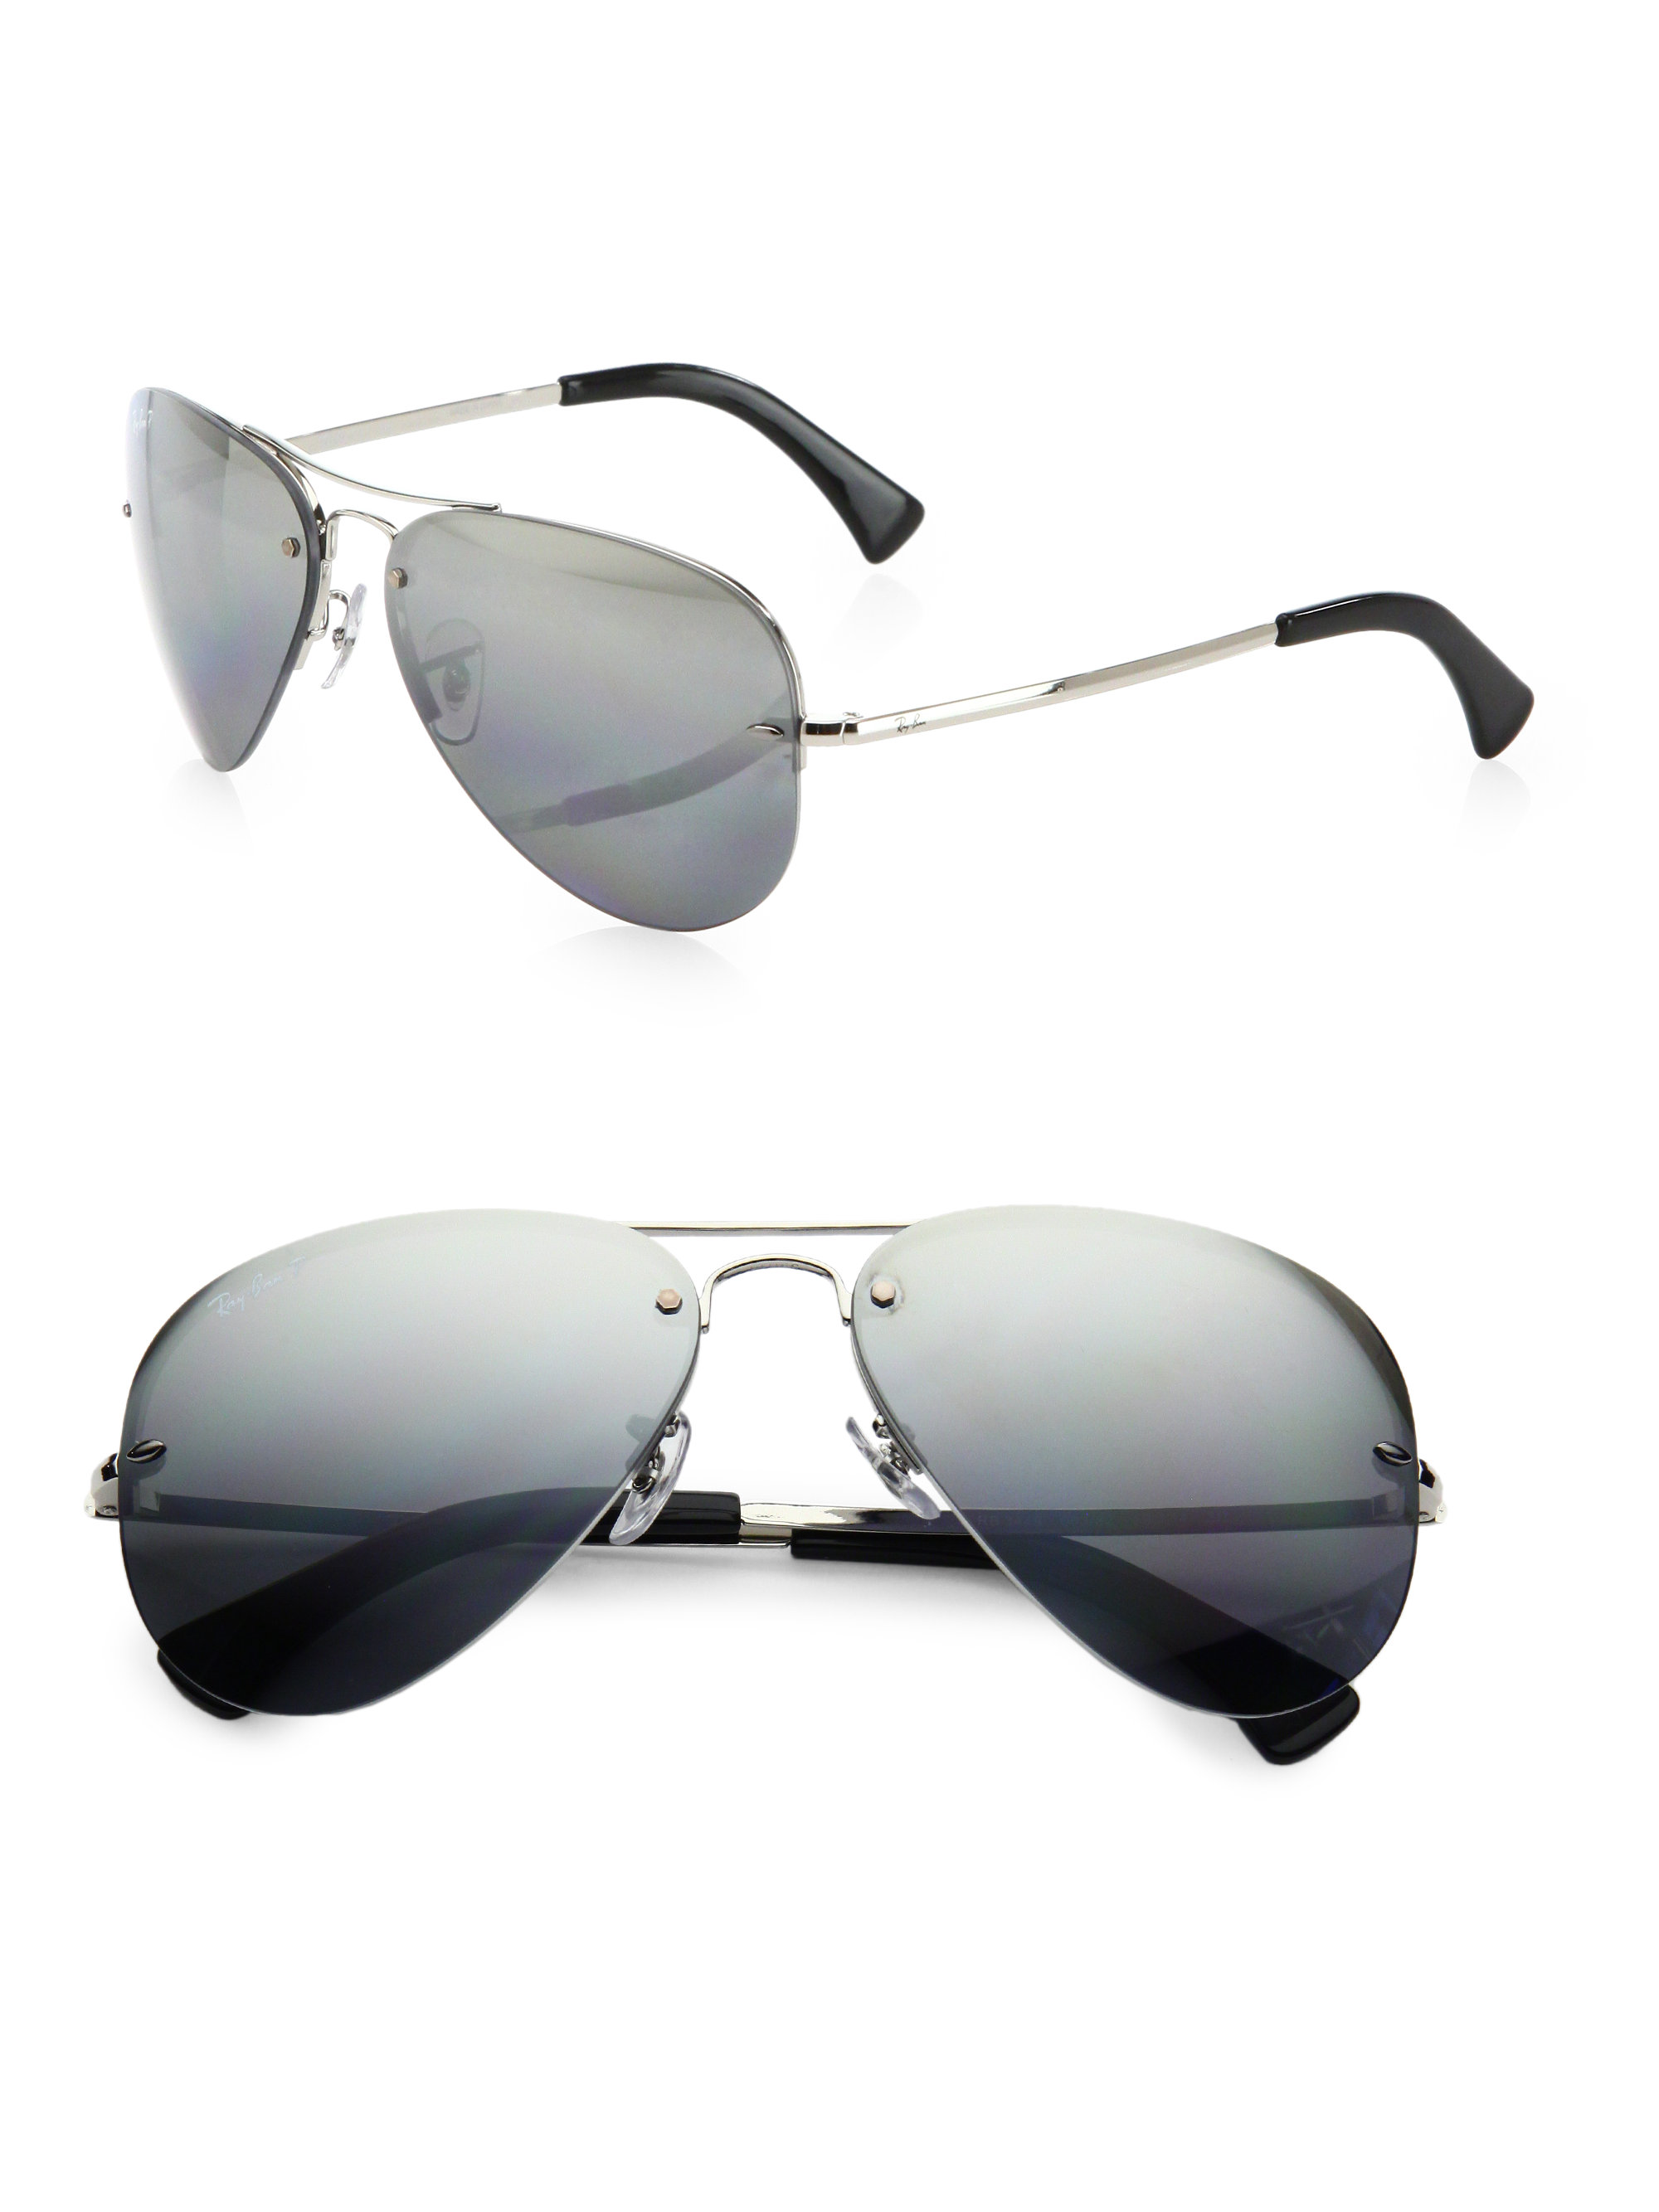 30a81804cee Ray-Ban Semi-rimless Aviators in Gray for Men - Lyst